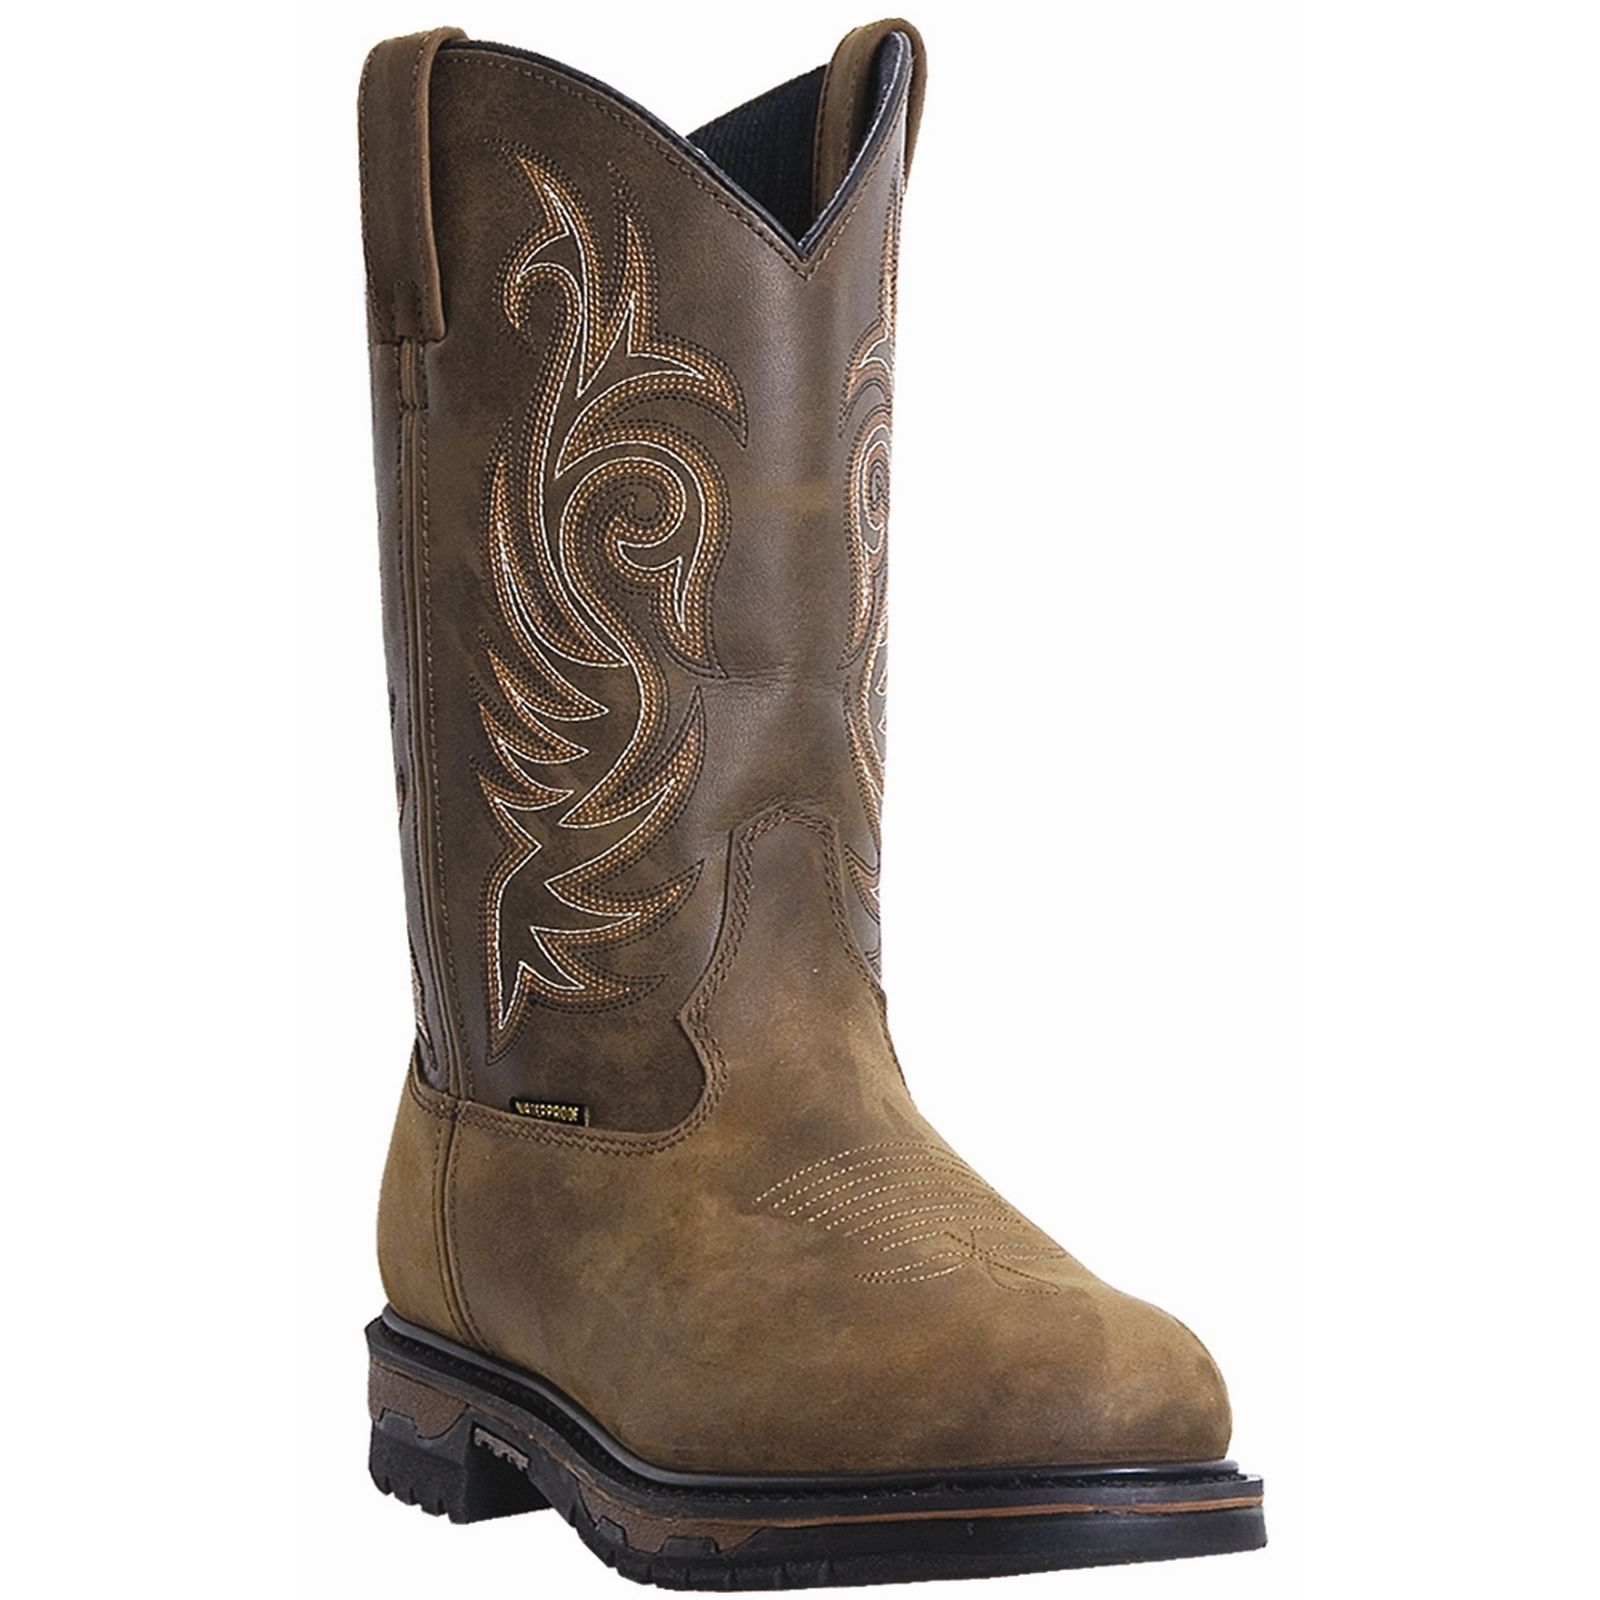 Laredo 68132 Men's Tan Cheyenne Sullivan Waterproof ST Work Boots by Laredo